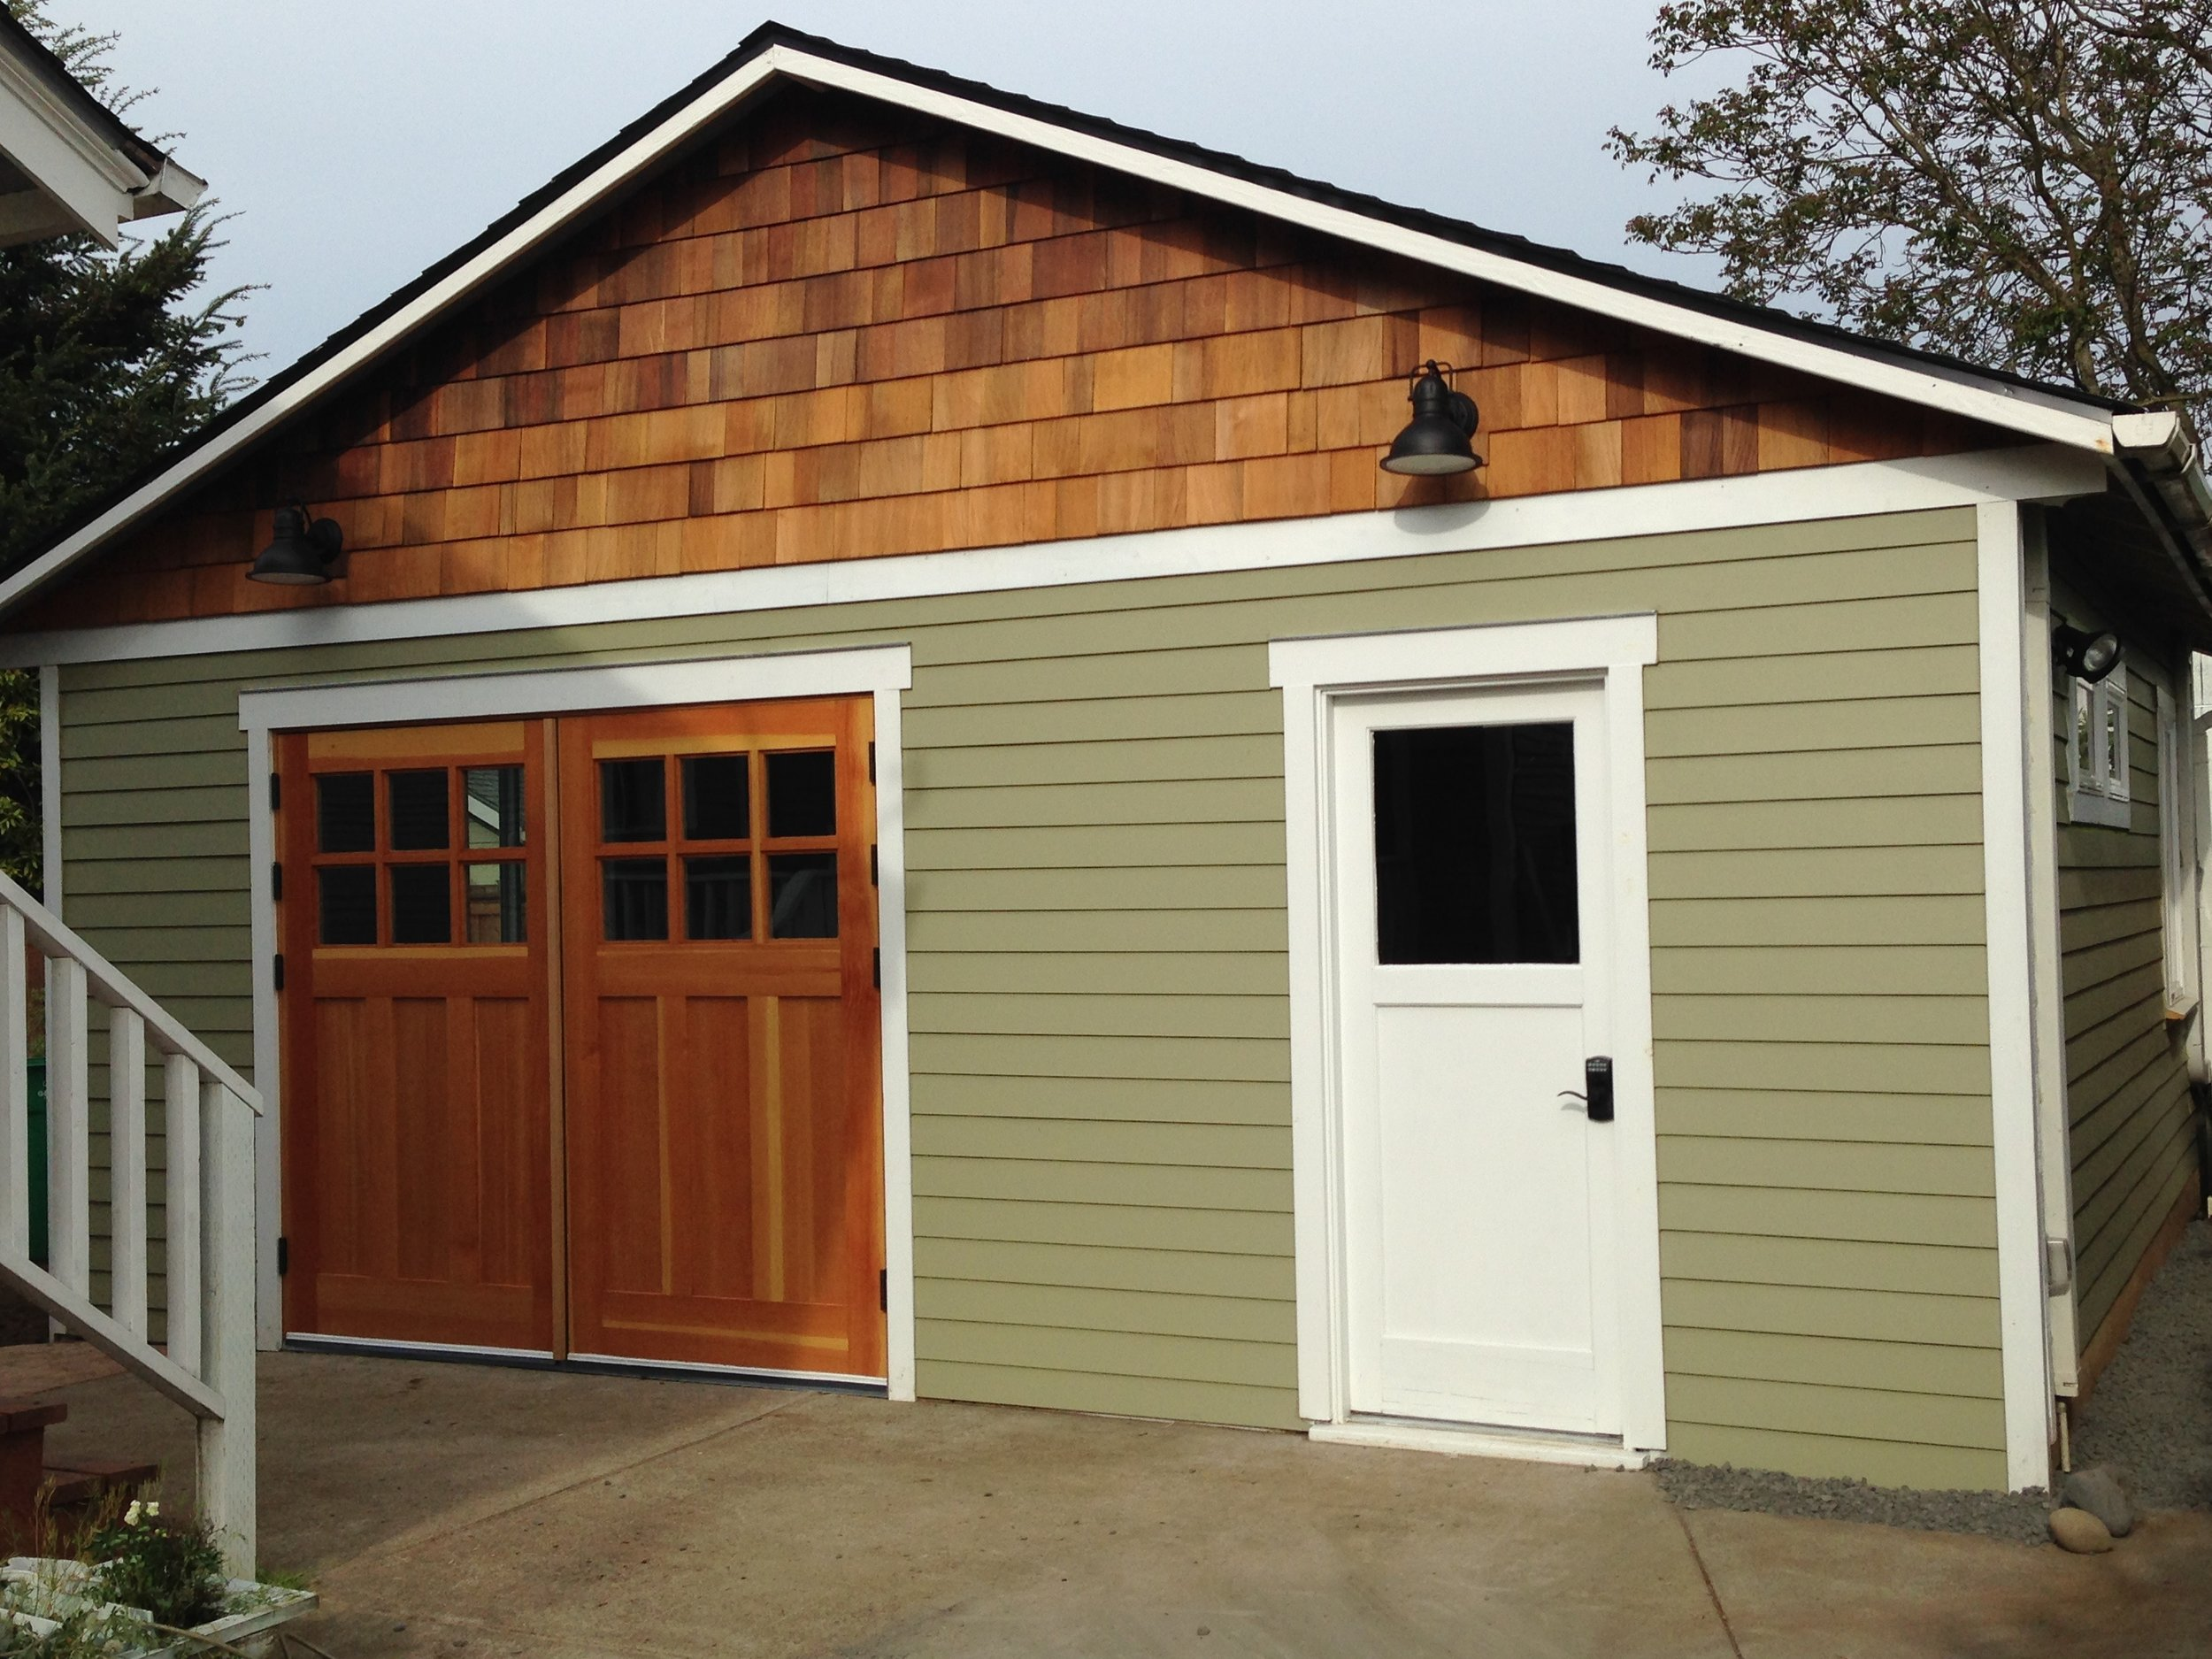 How to Save Money with a Garage Conversion ADU & How to Save Money with a Garage Conversion ADU \u2014 Building an ADU